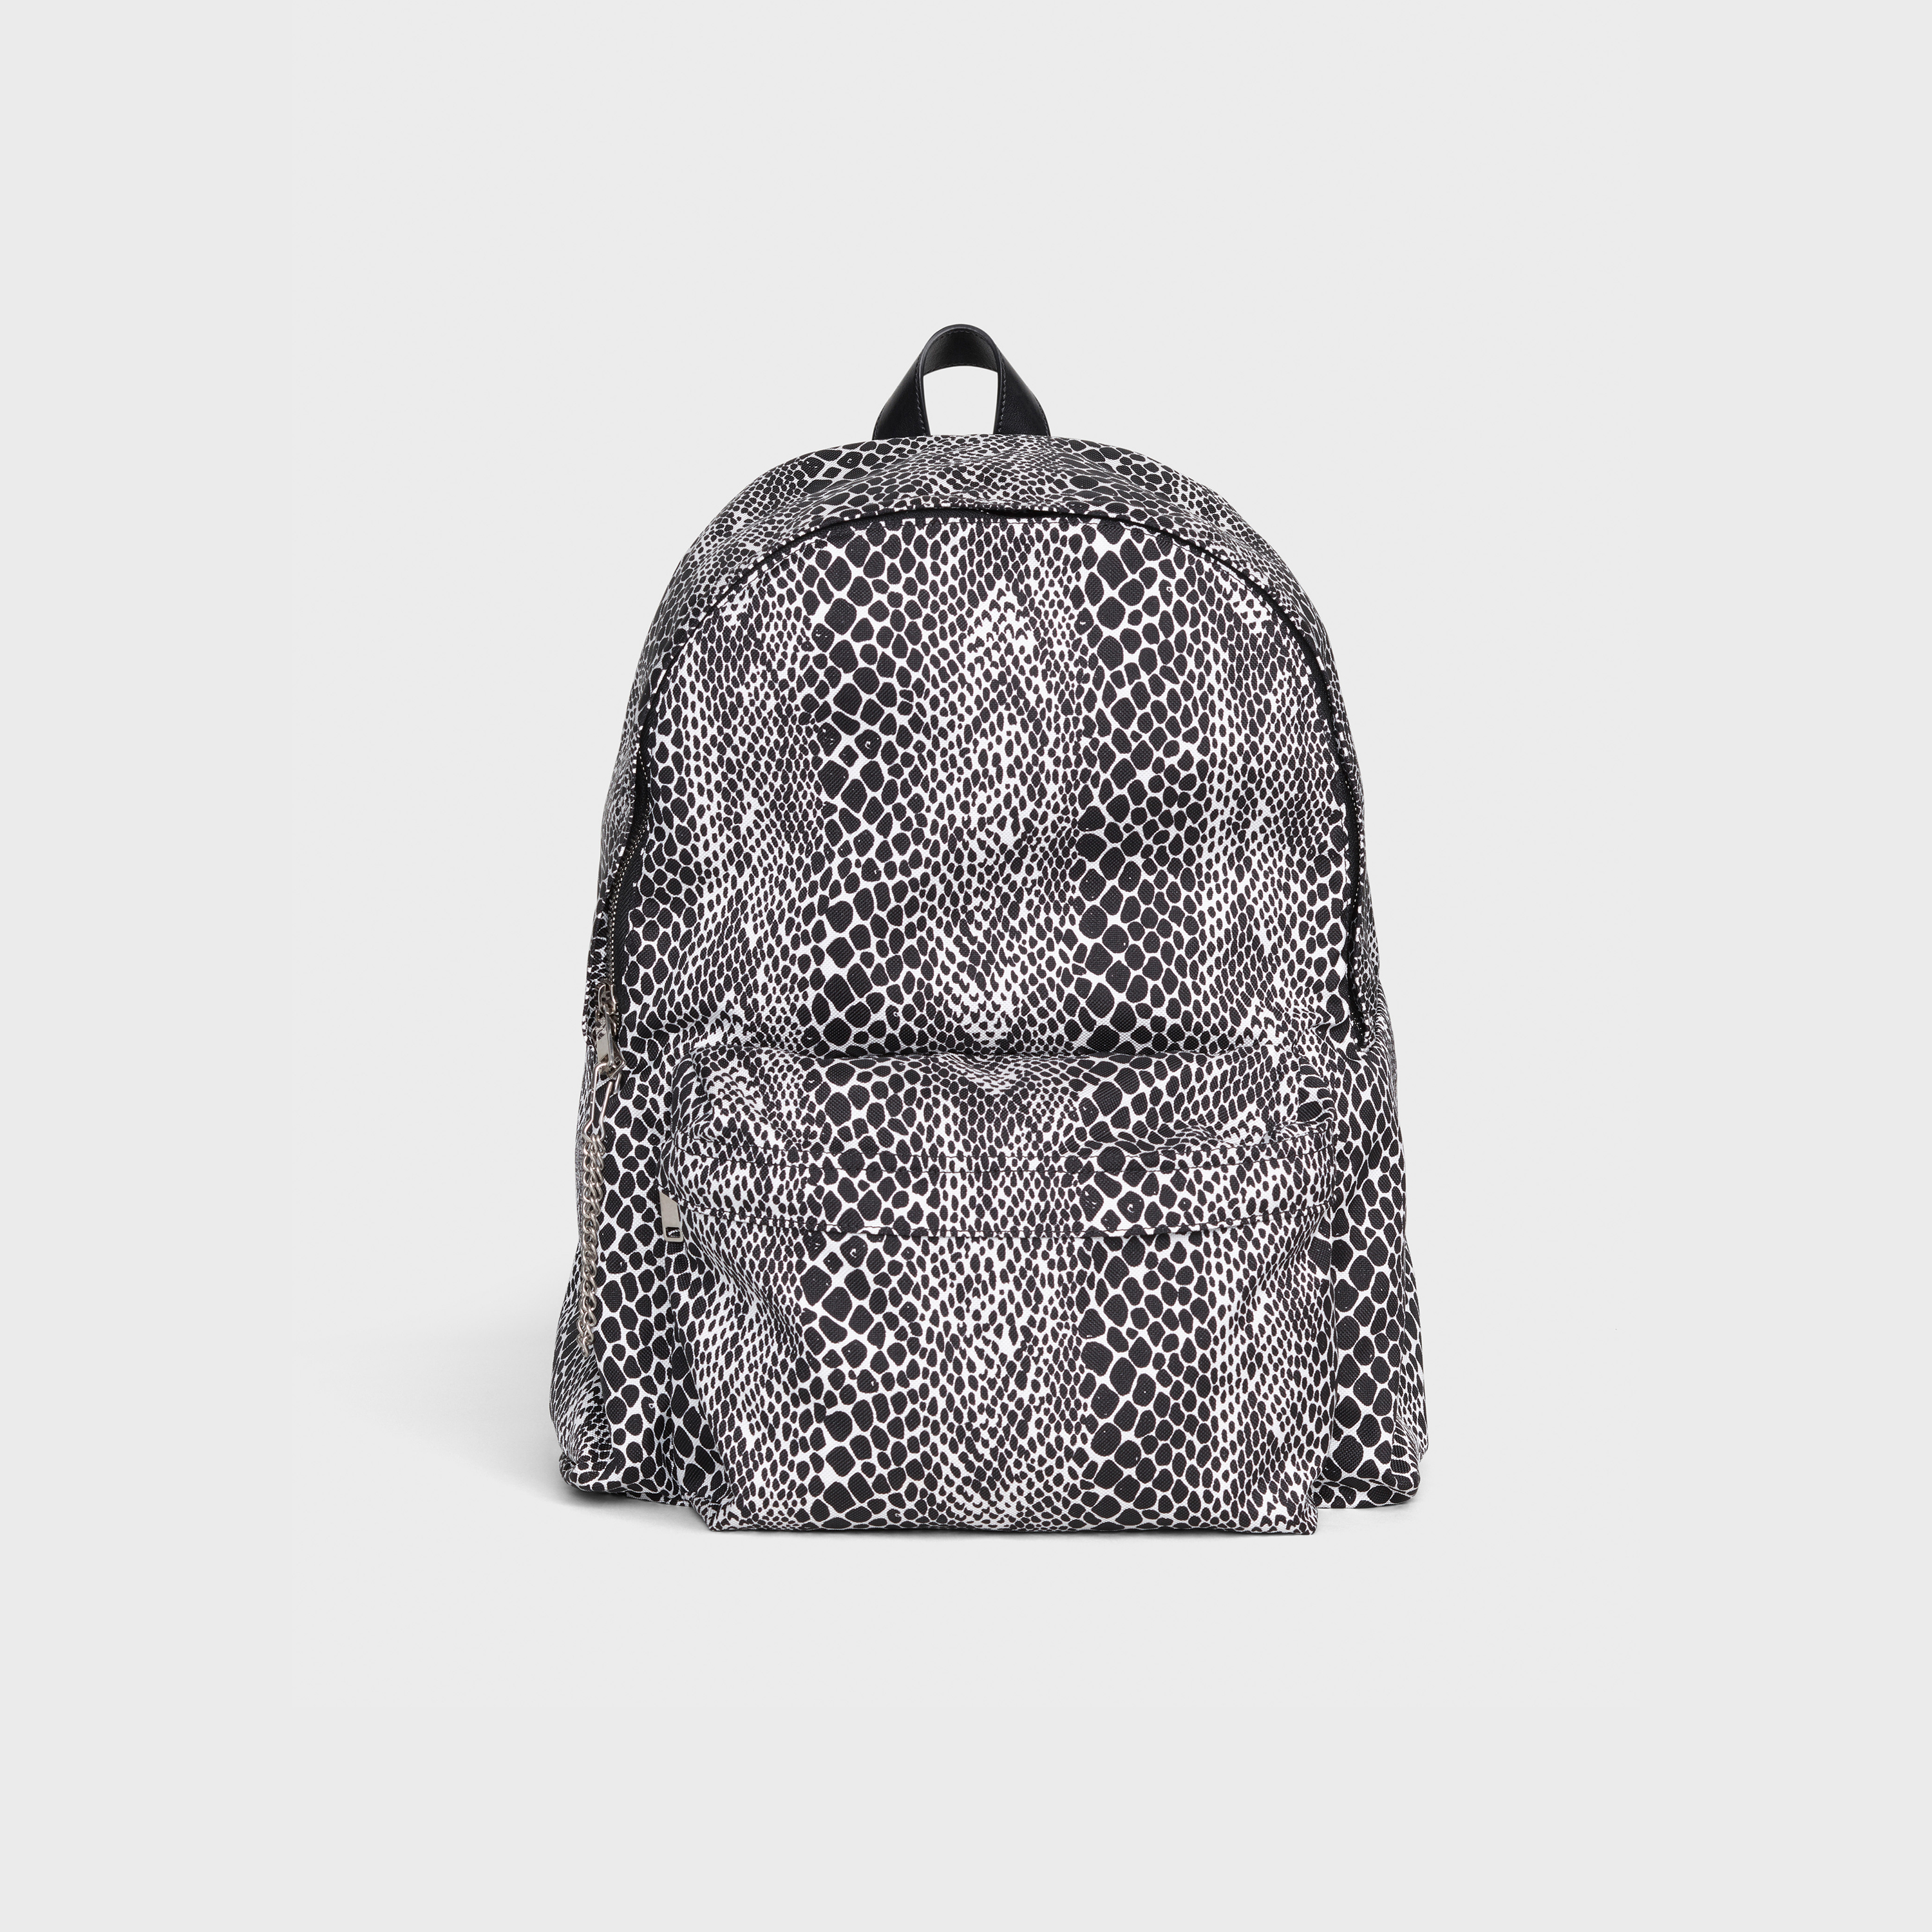 Medium Backpack in nylon with python printed | CELINE